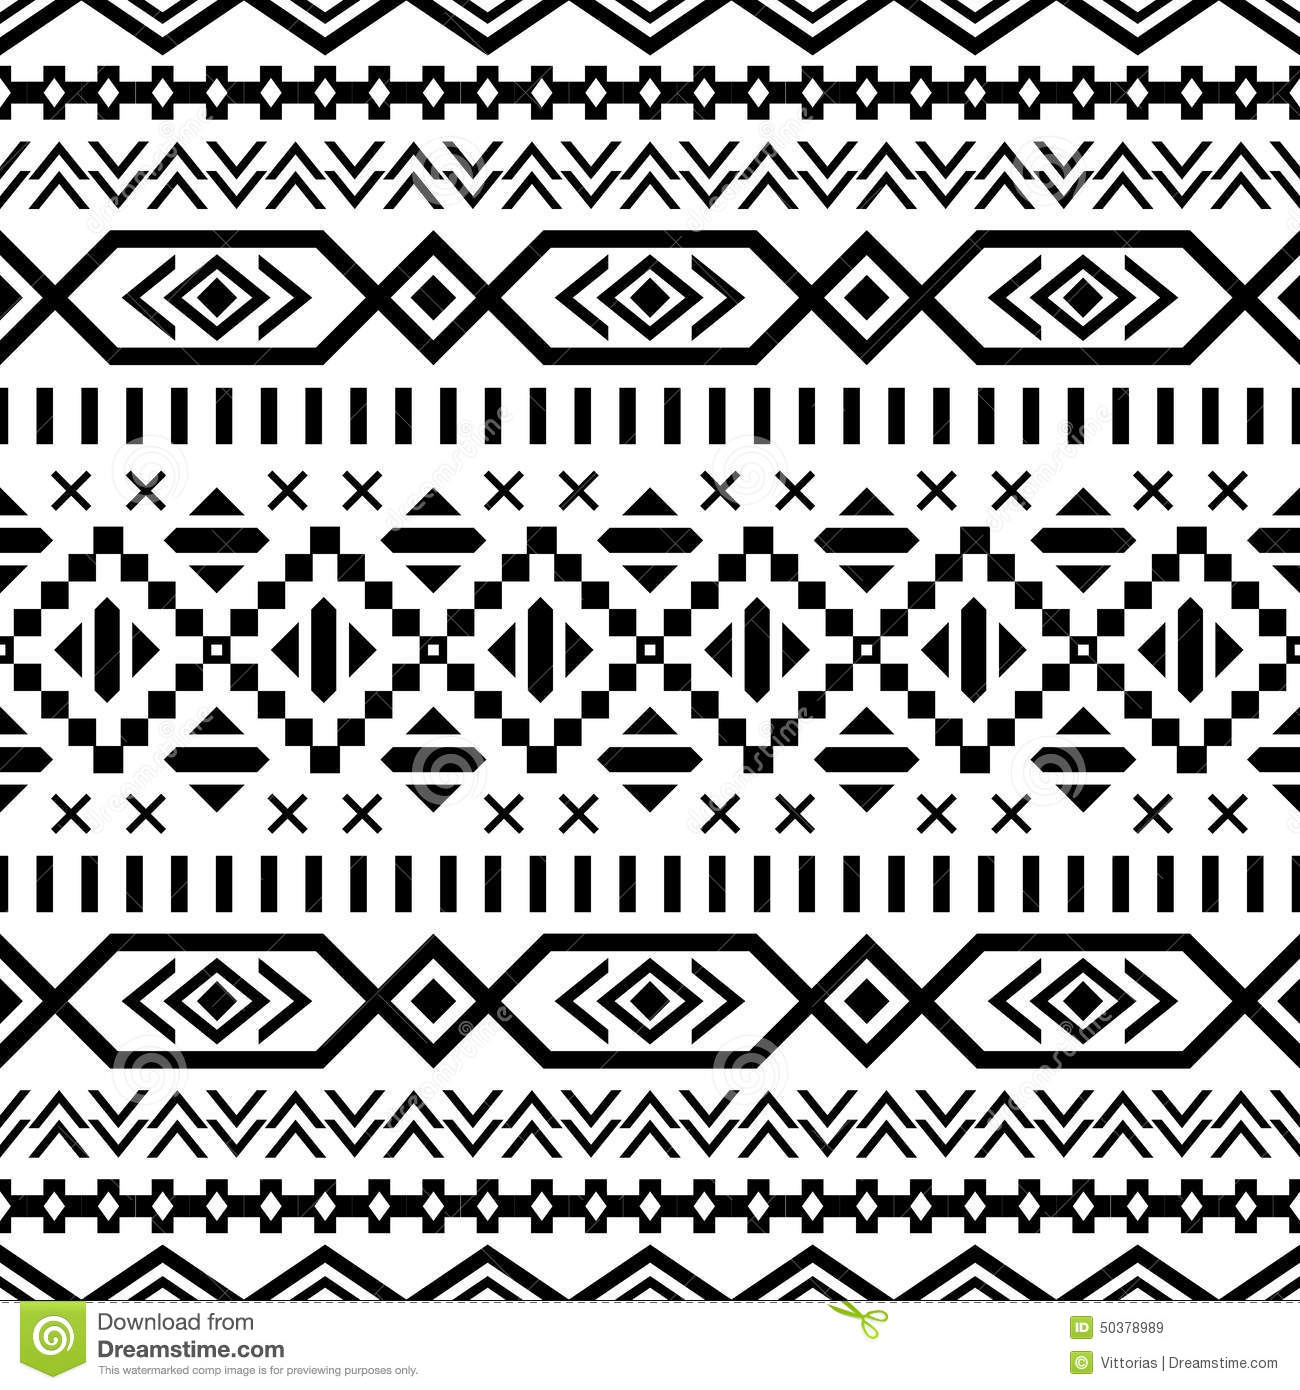 Ethnic Seamless Pattern Aztec Black White Background Tribal Navajo Print Modern Abstract Wallpaper Vector Illustration